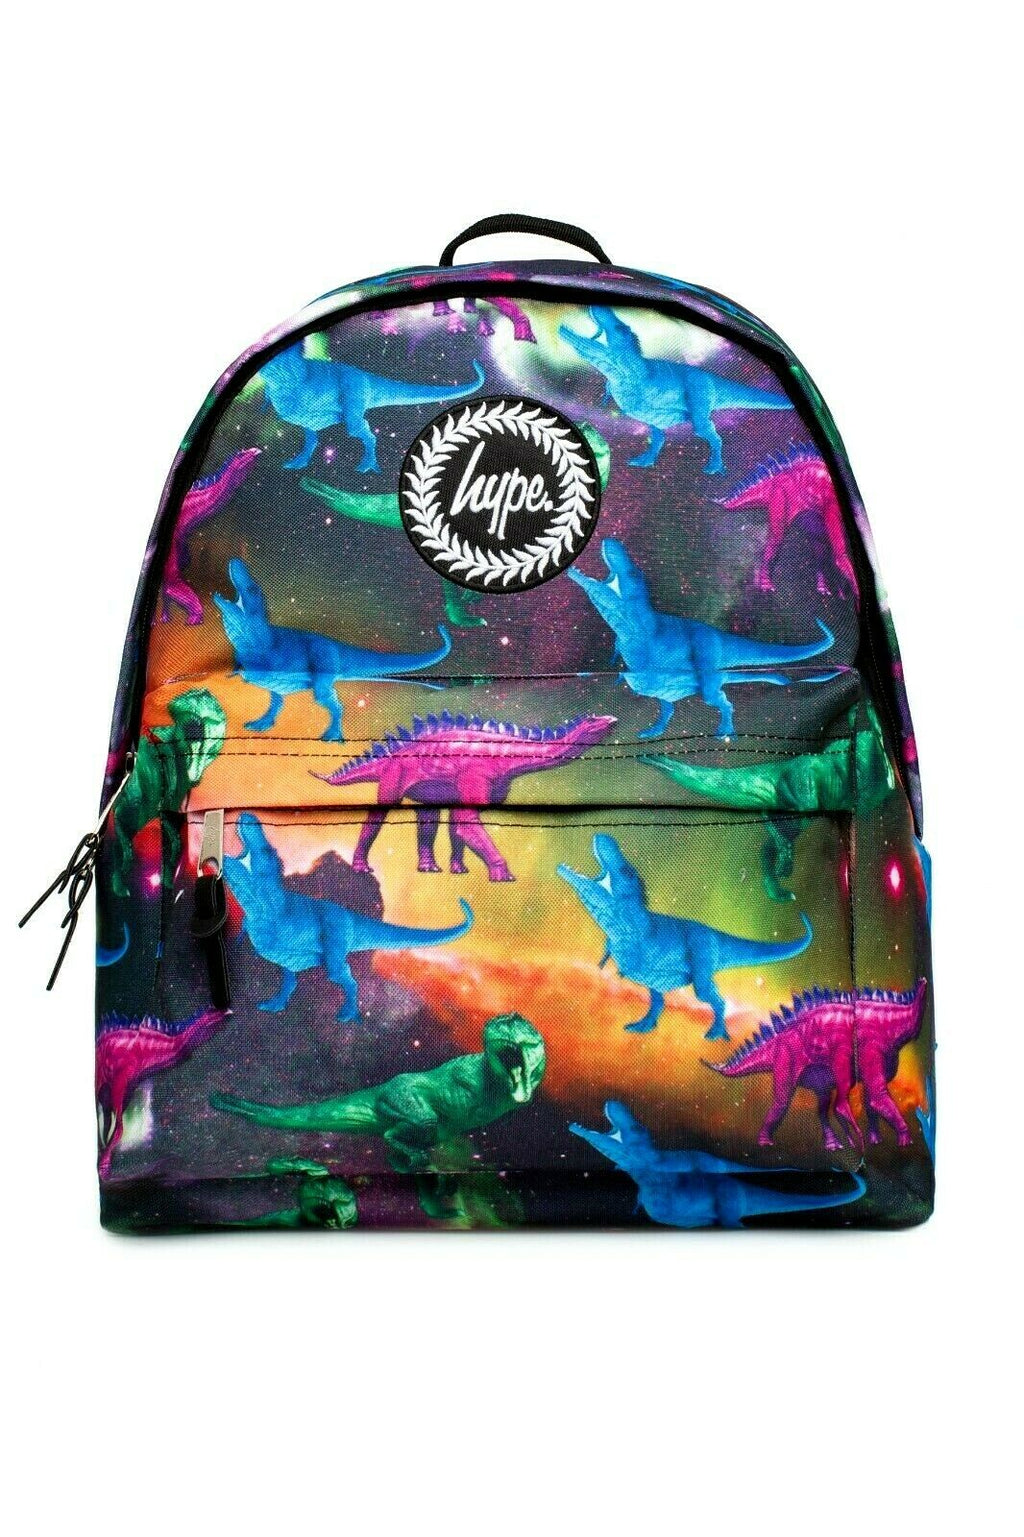 HYPE DINO SPACE BACKPACK RUCKSACK BAG - MULTI